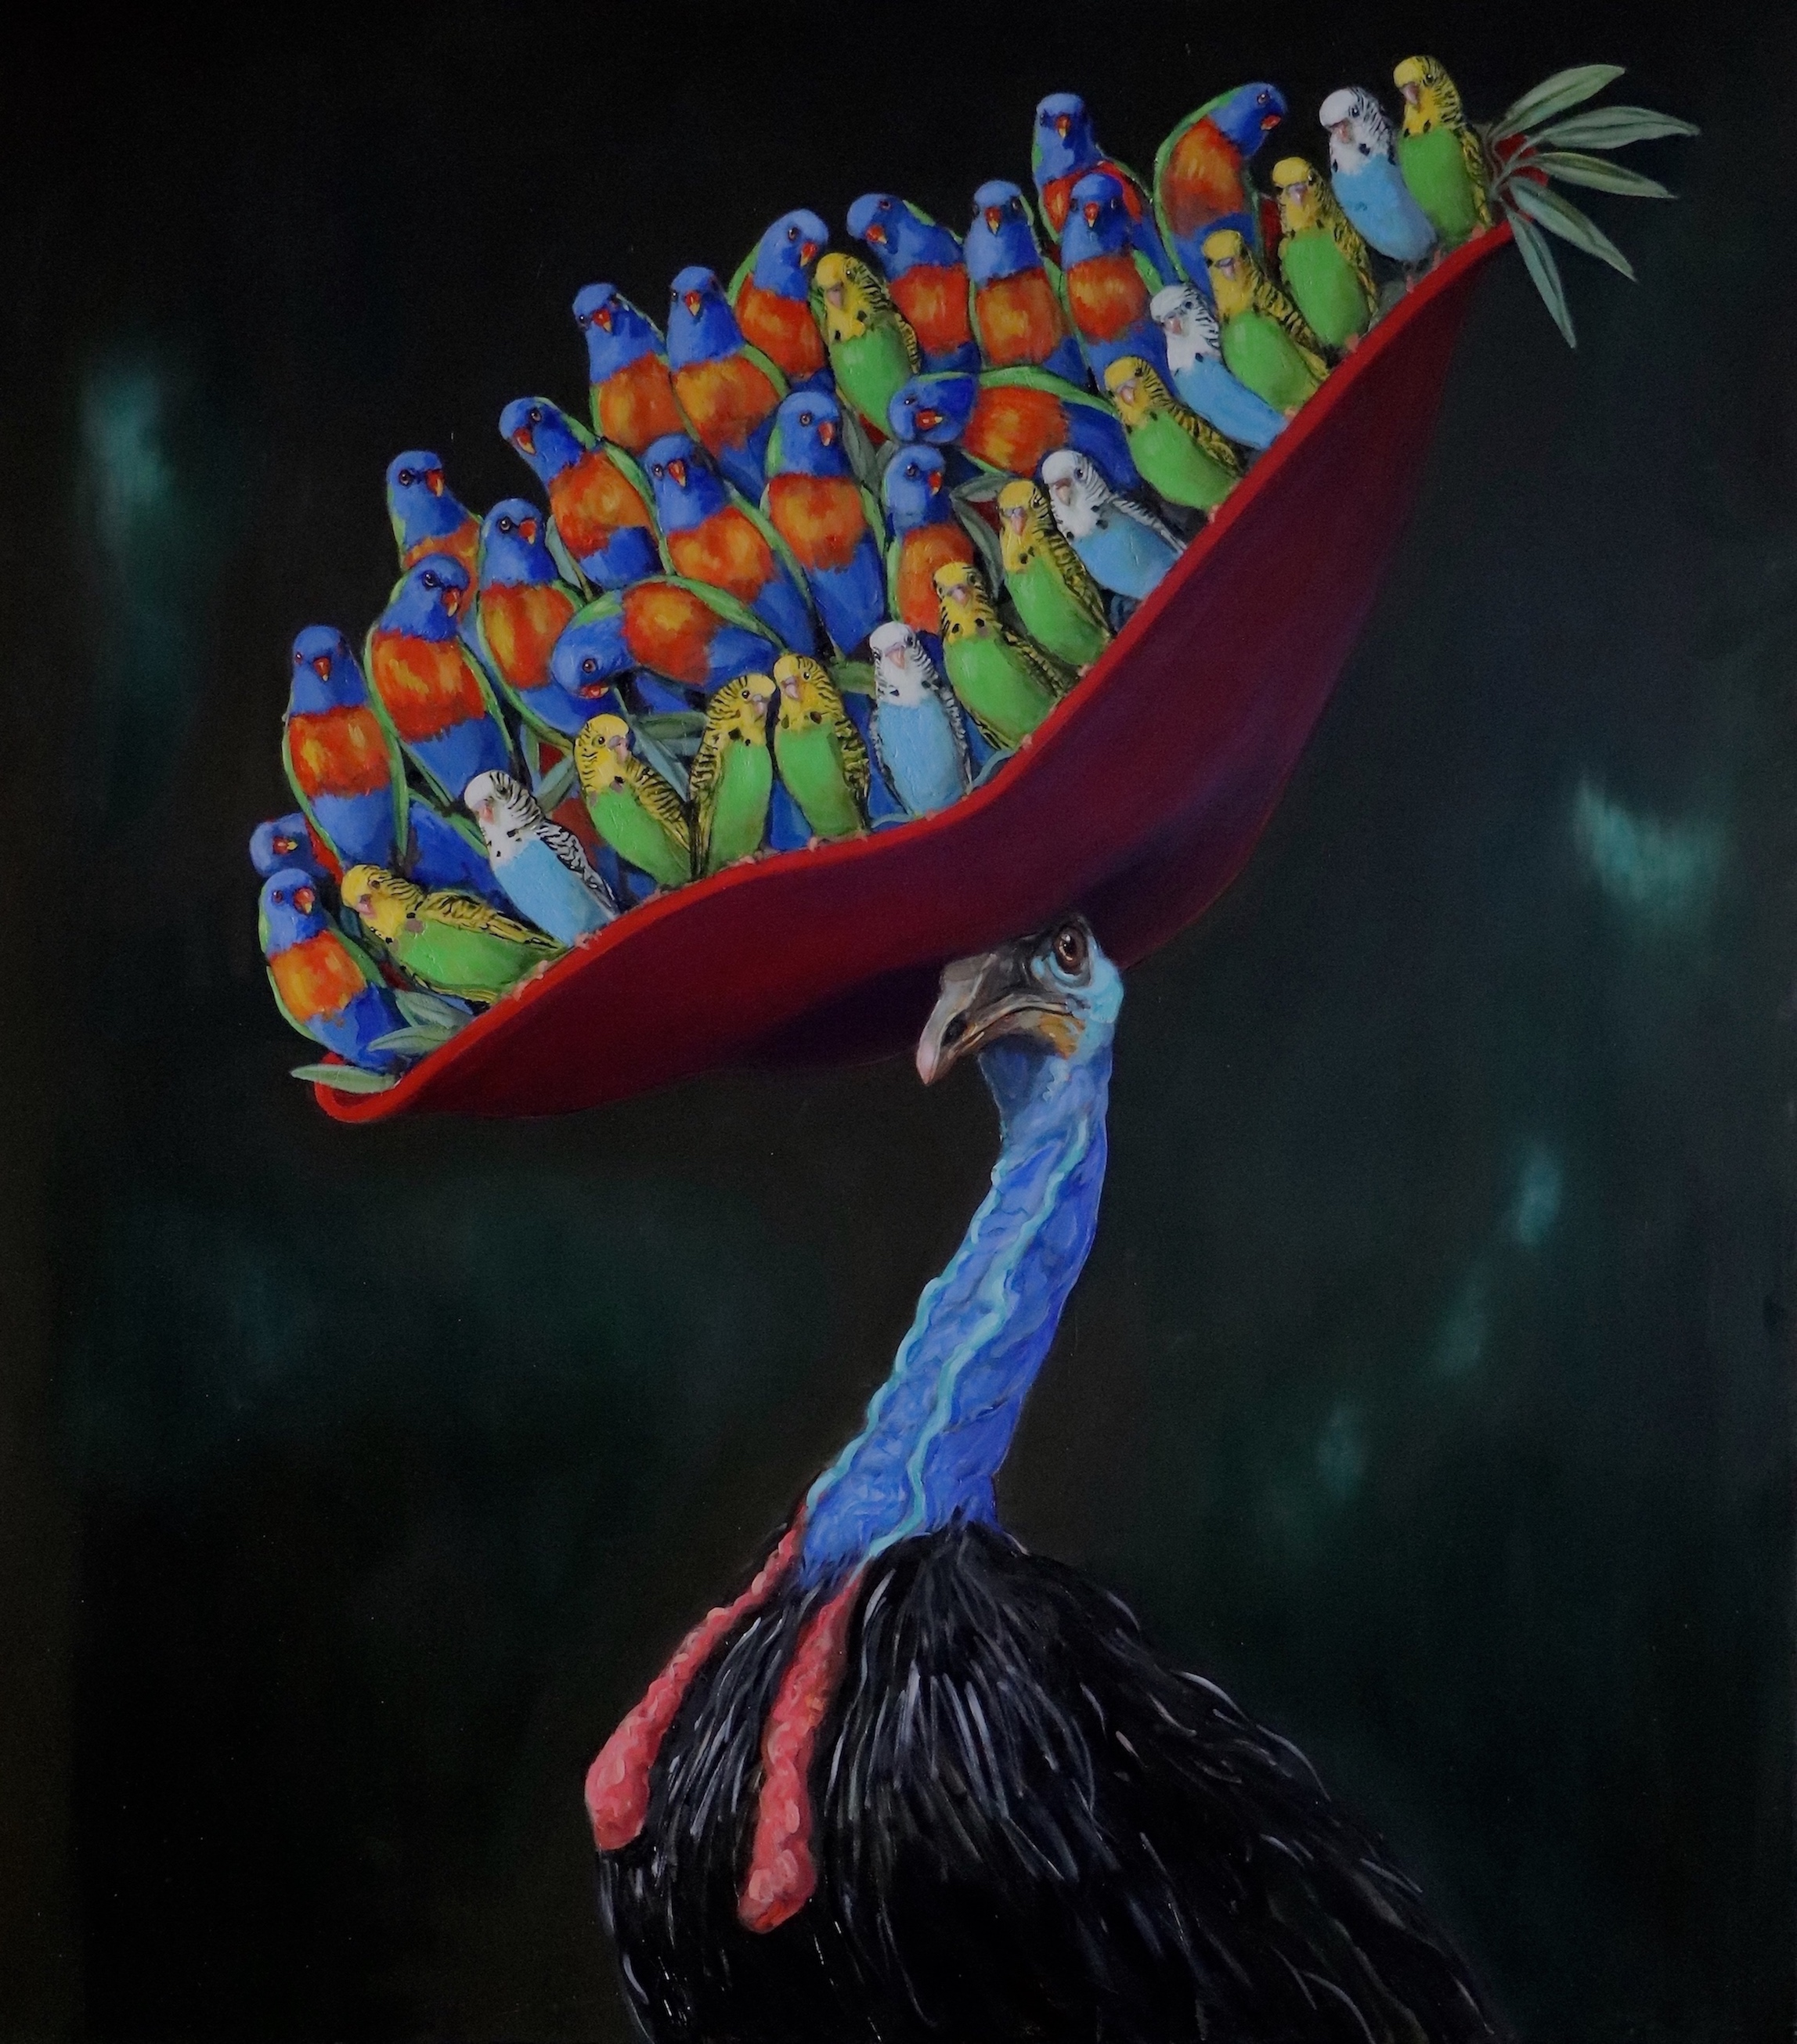 Joanna Braithwaite,  Bold and the Beautiful,  2019, oil on canvas, 137 x 121cm; courtesy the artist and Martin Browne Contemporary, Sydney